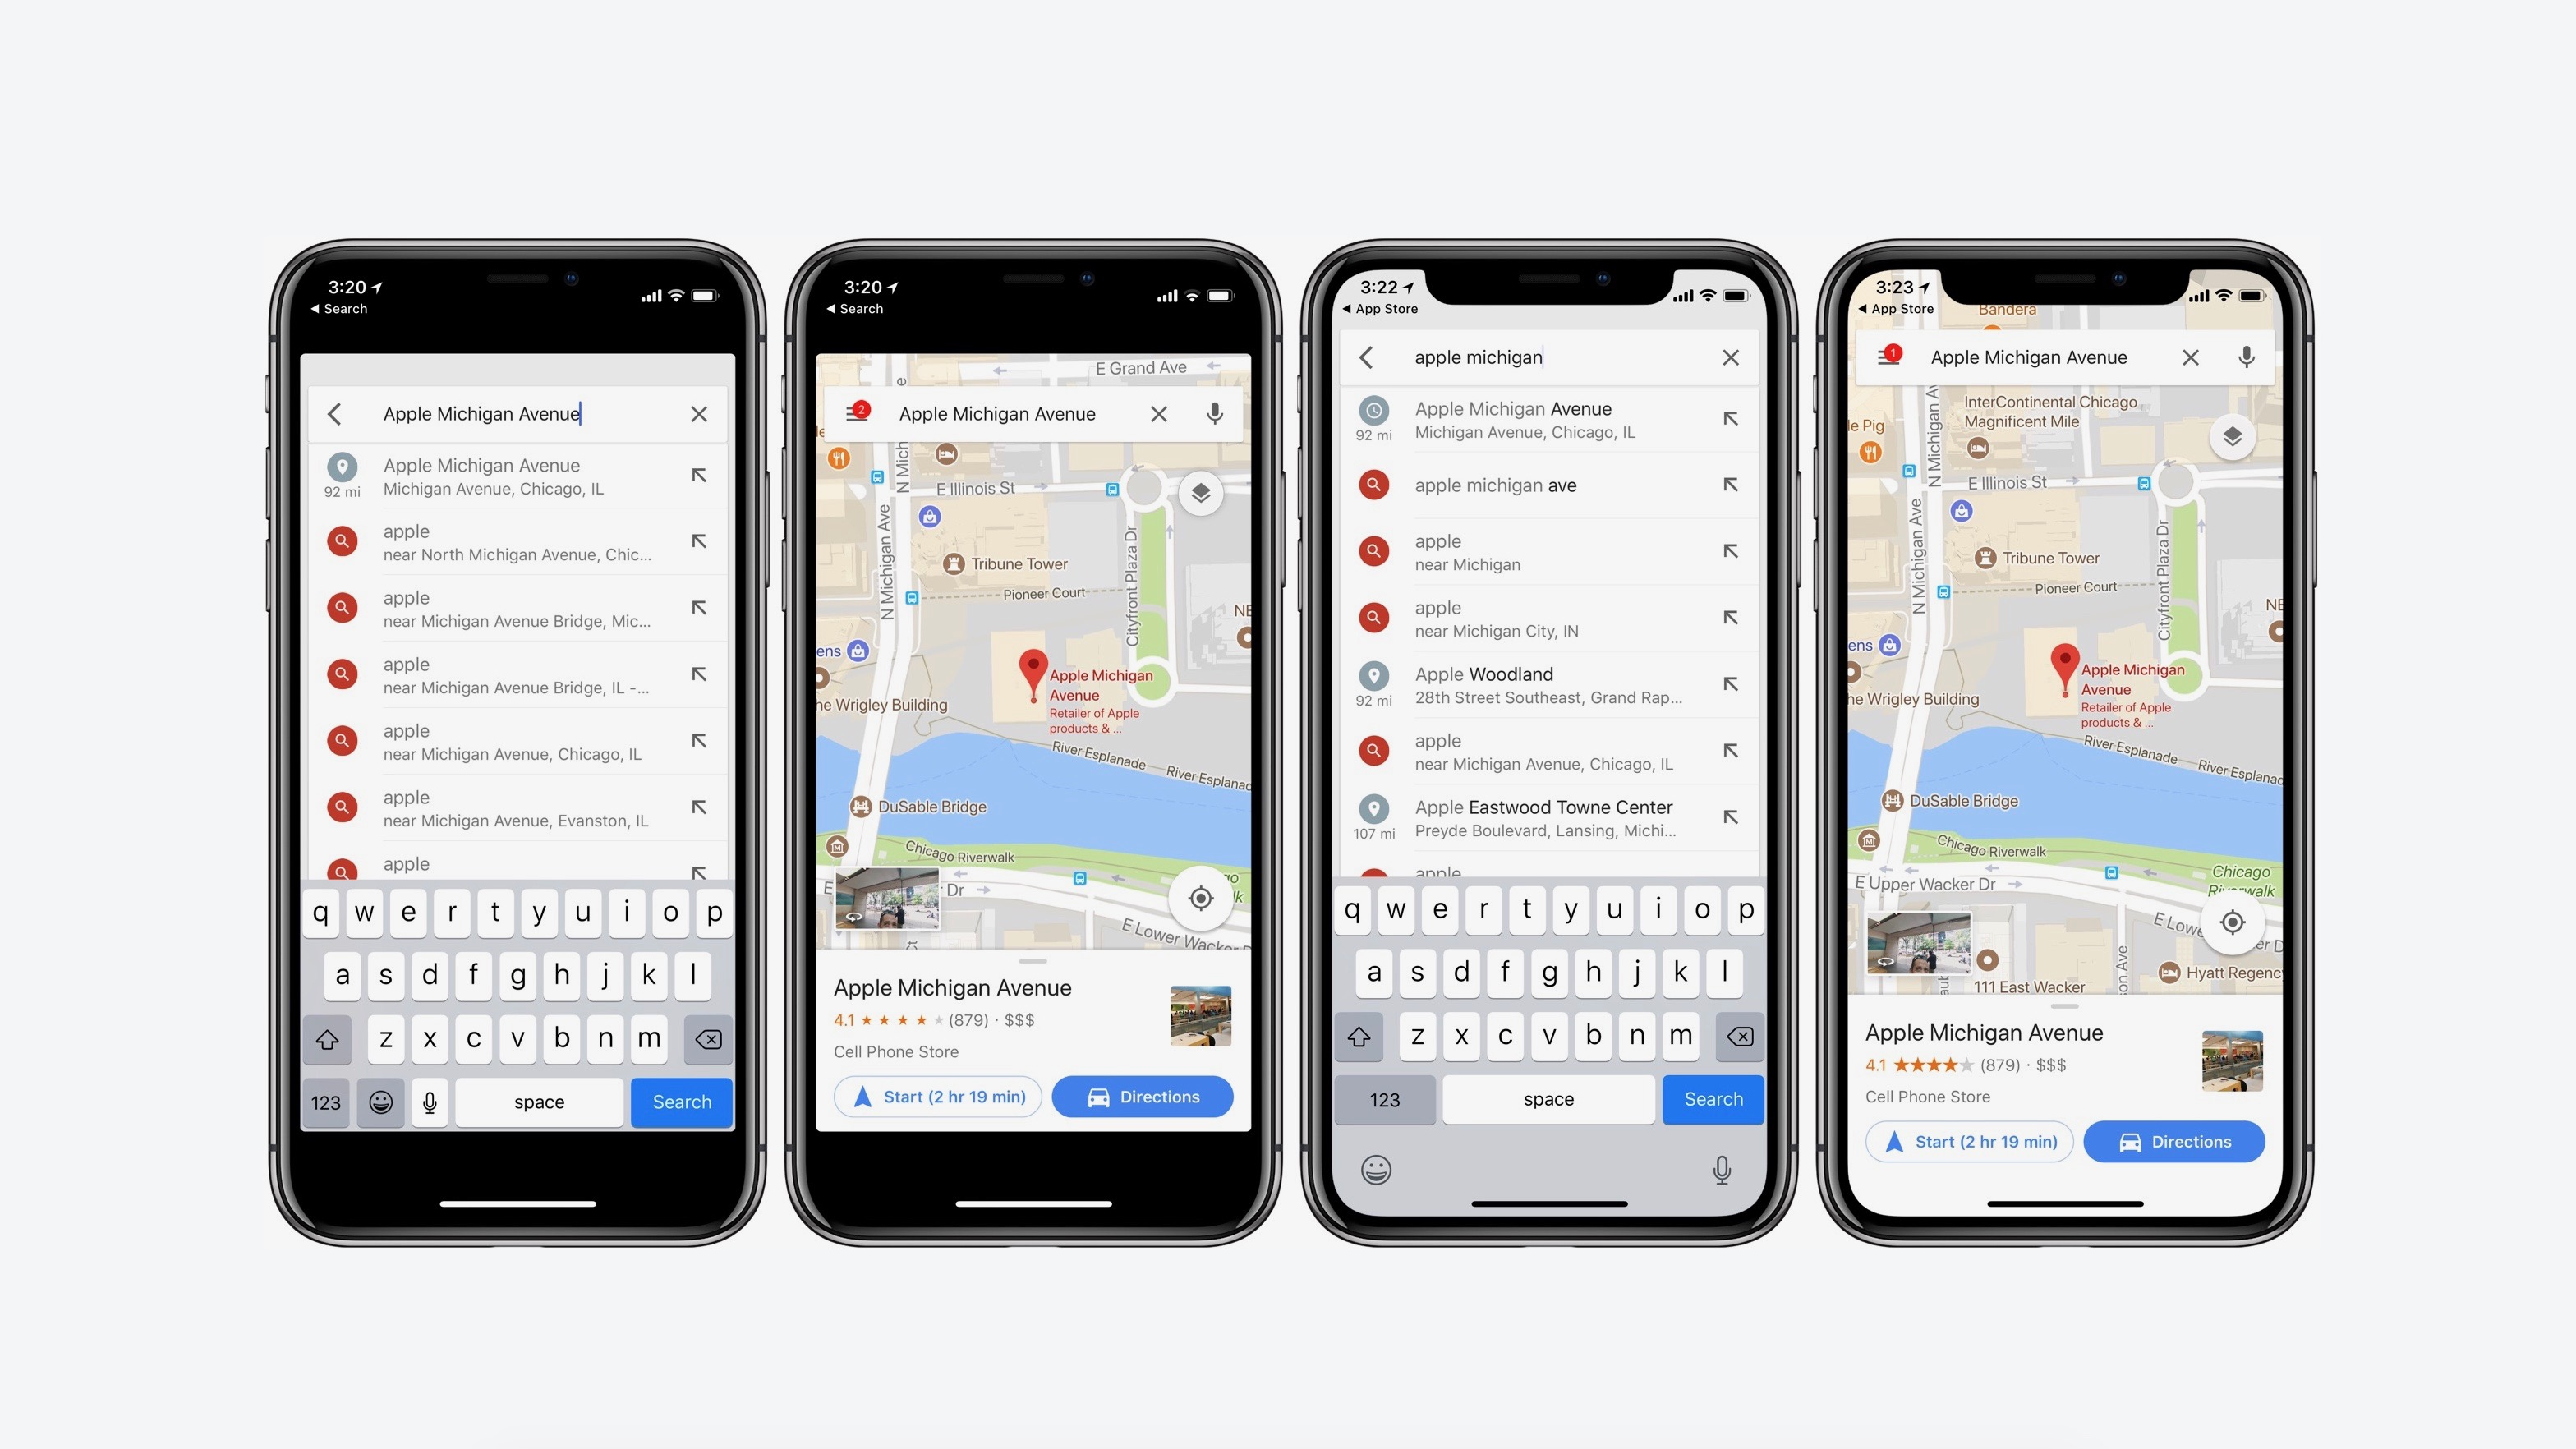 Google Maps for iOS gets update with iPhone X support ...